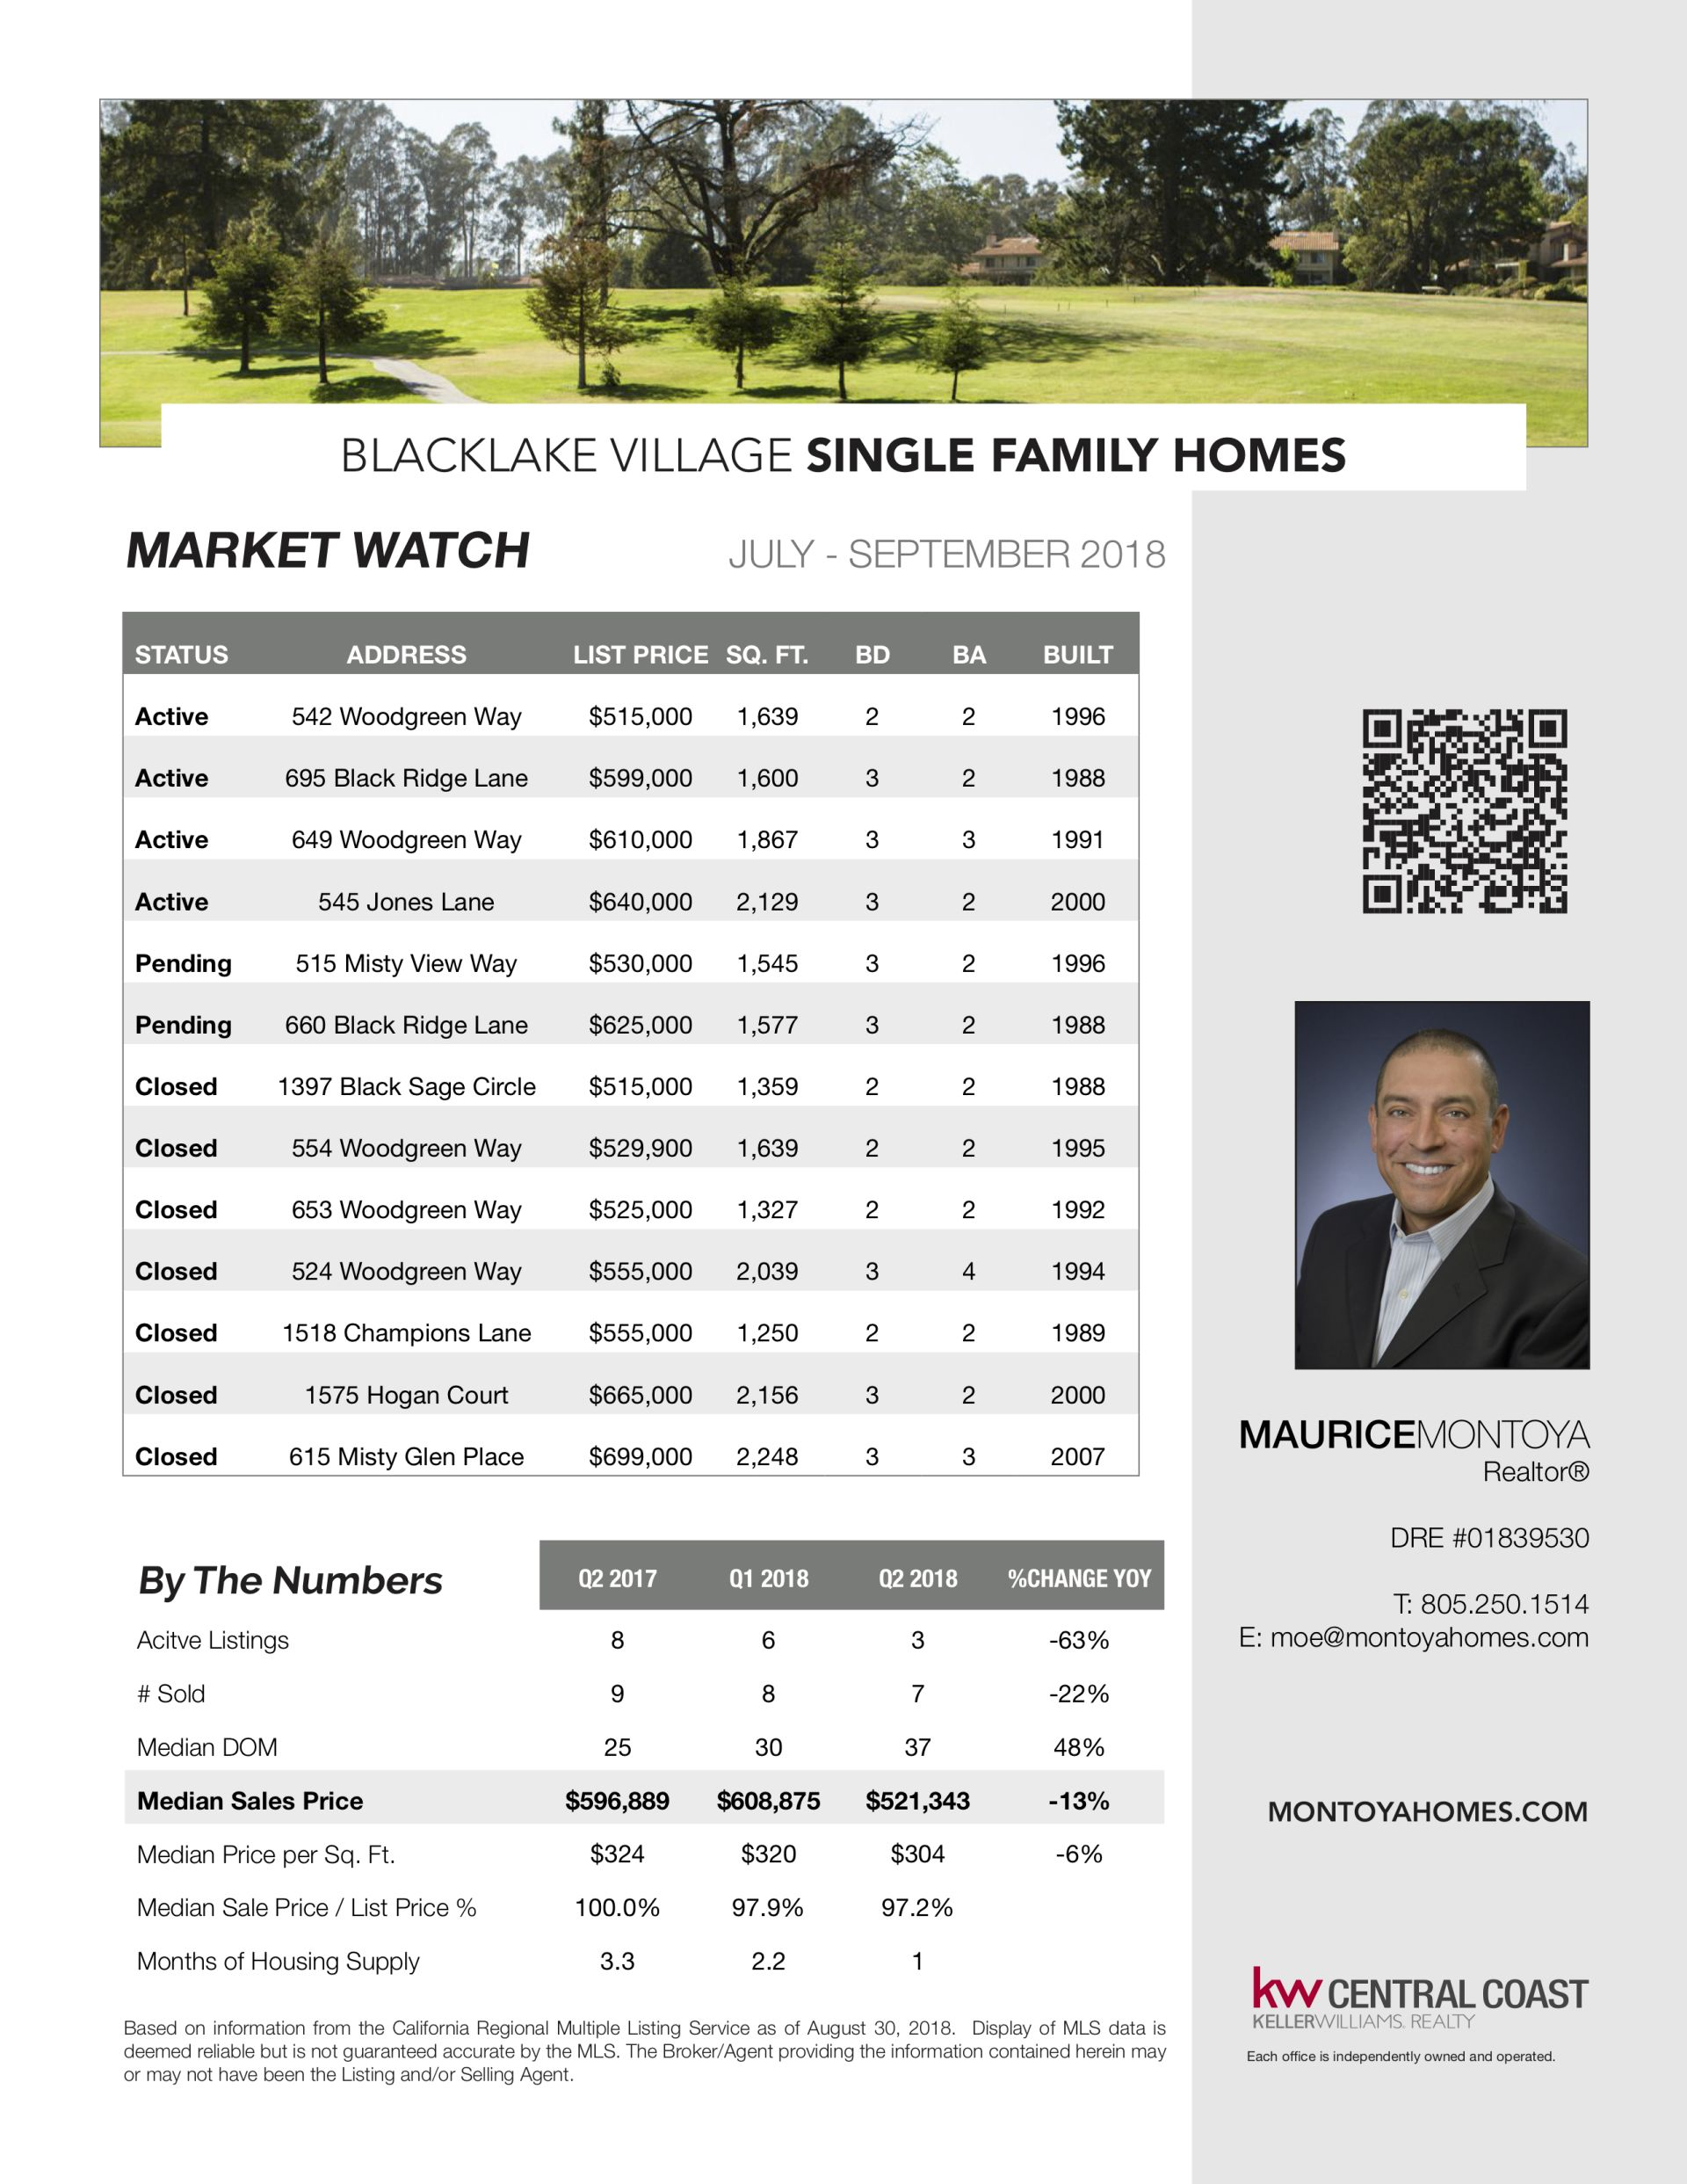 Blacklake Village Market Watch – September 2018